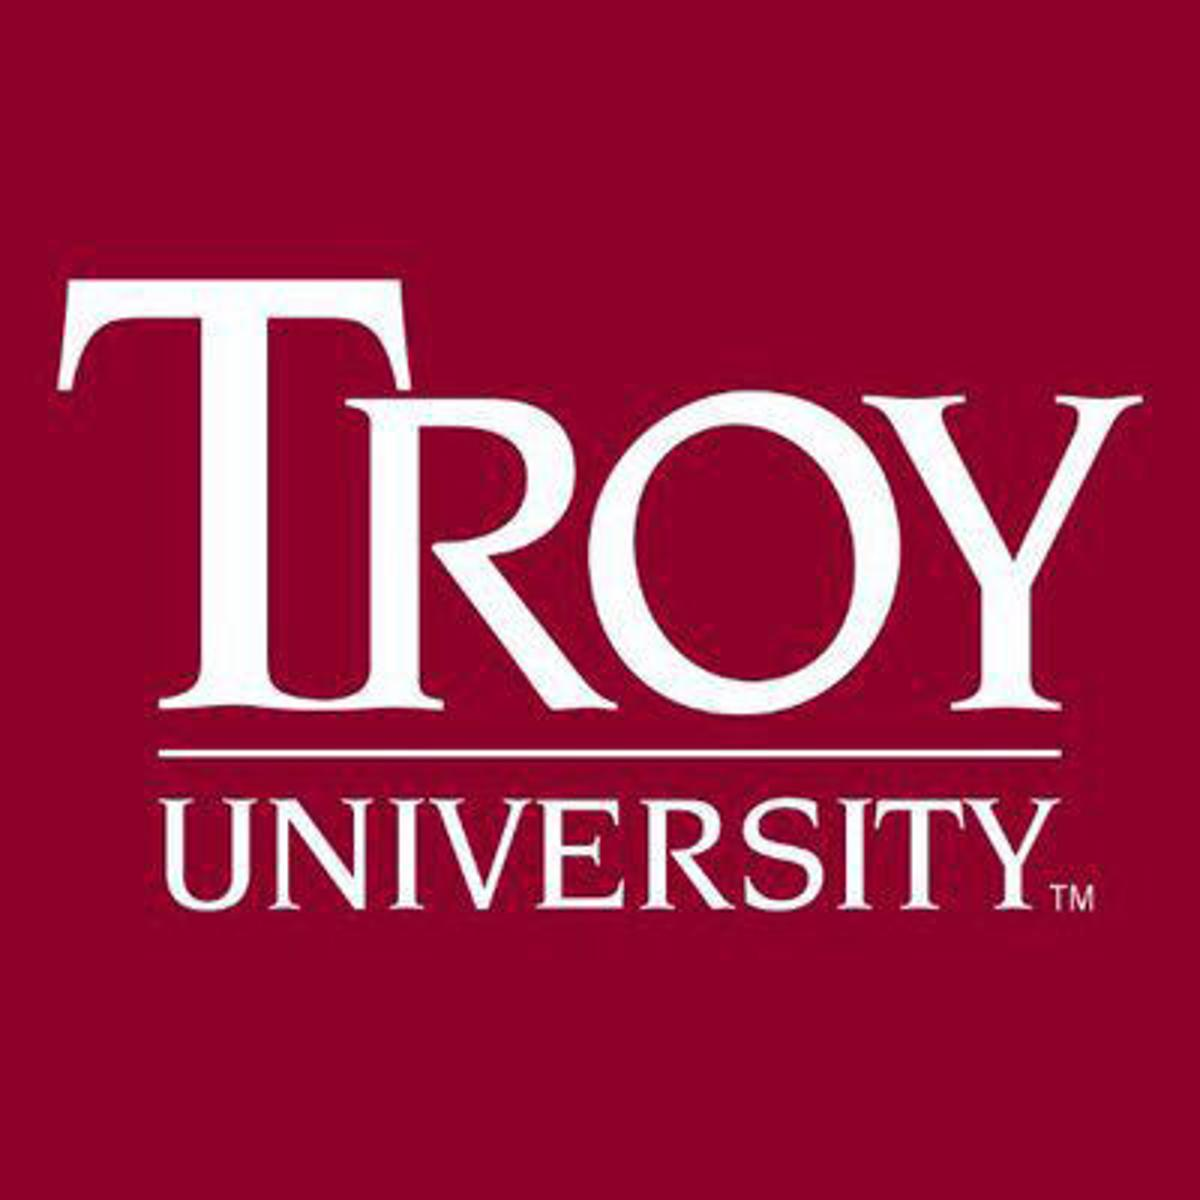 Troy University Tuition >> Troy University Announces It Will Freeze Tuition For 2019 20